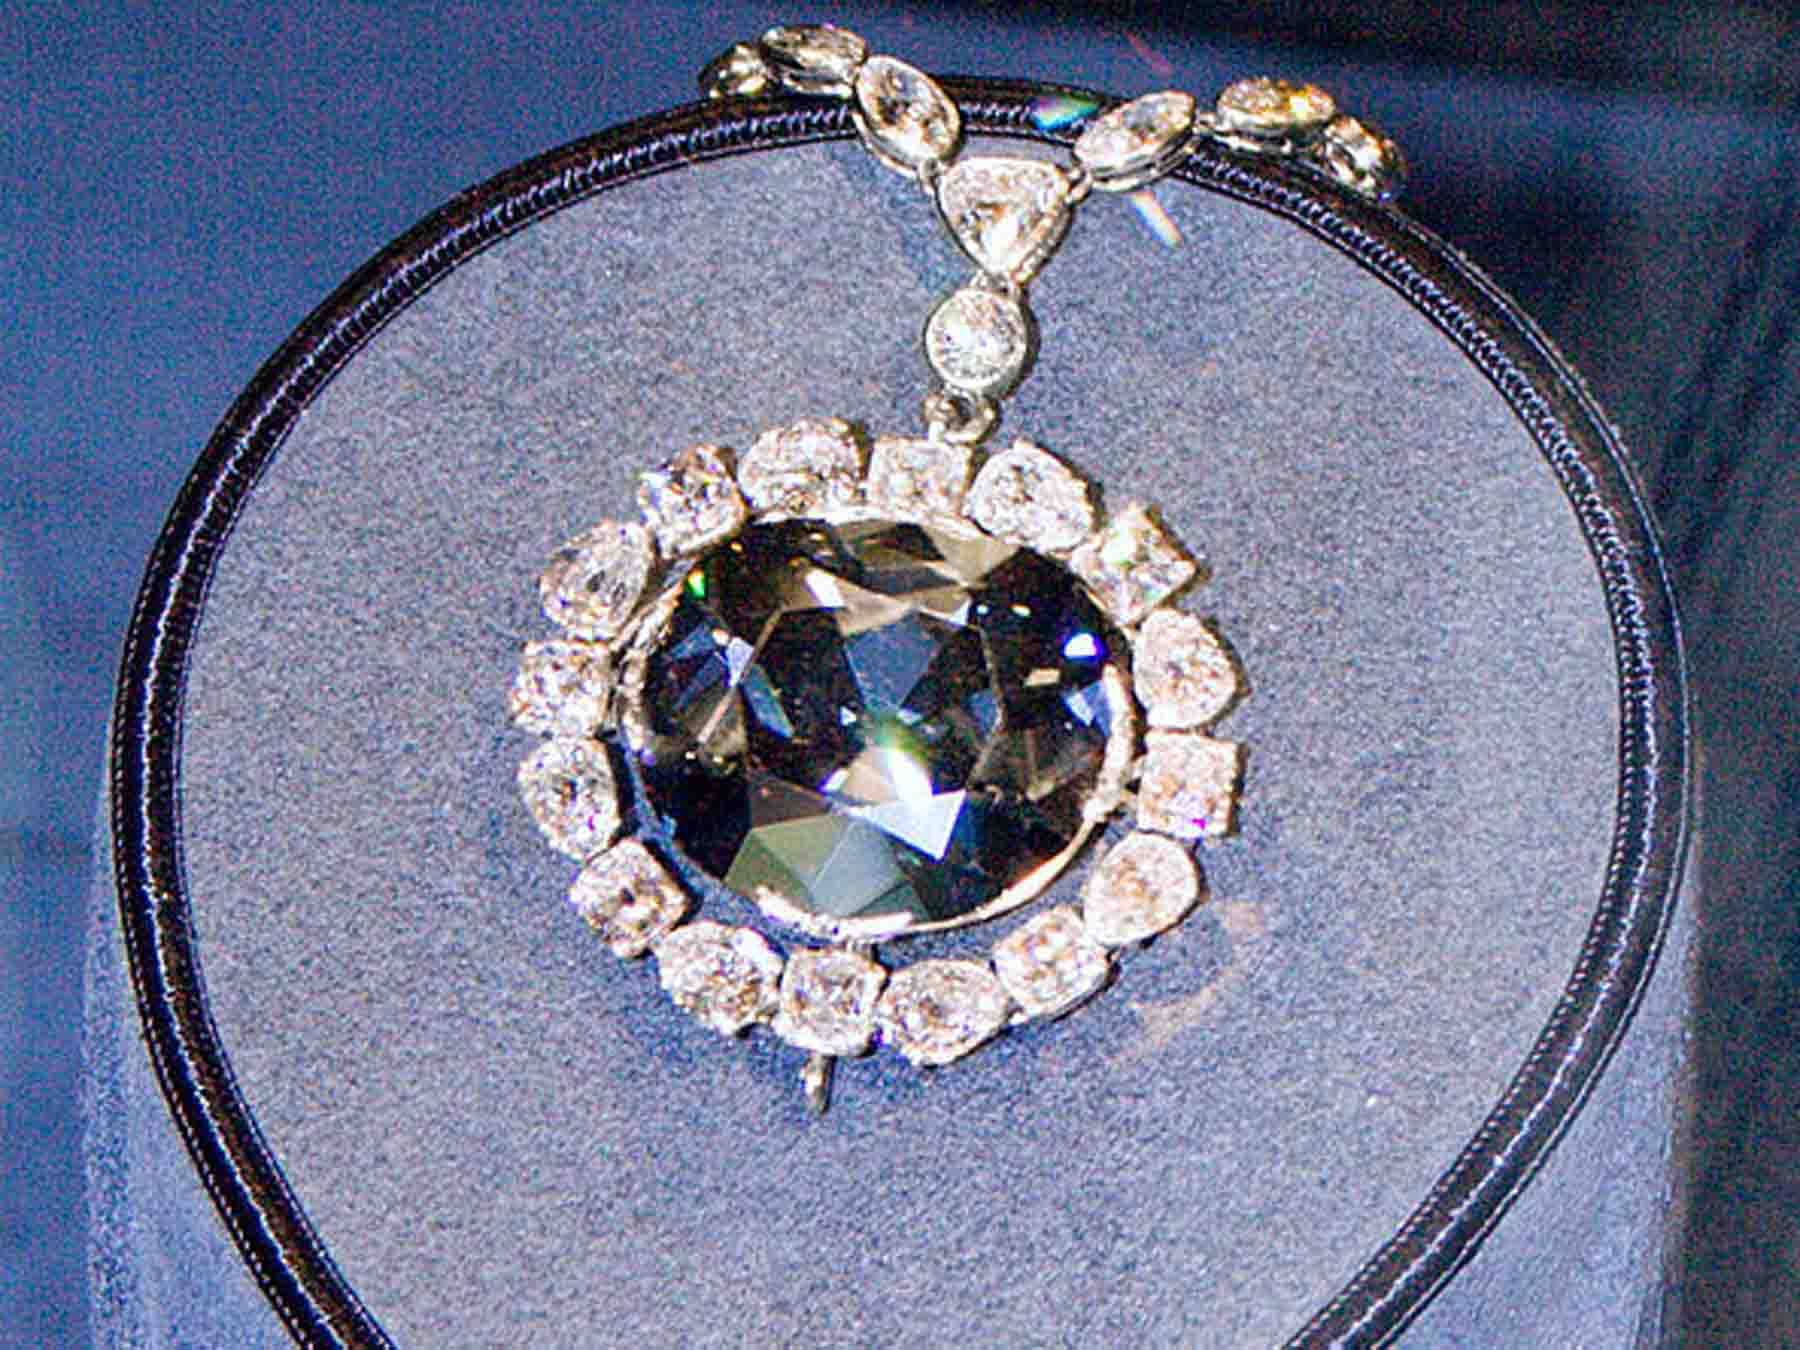 The Intriguing History of the Hope Diamond